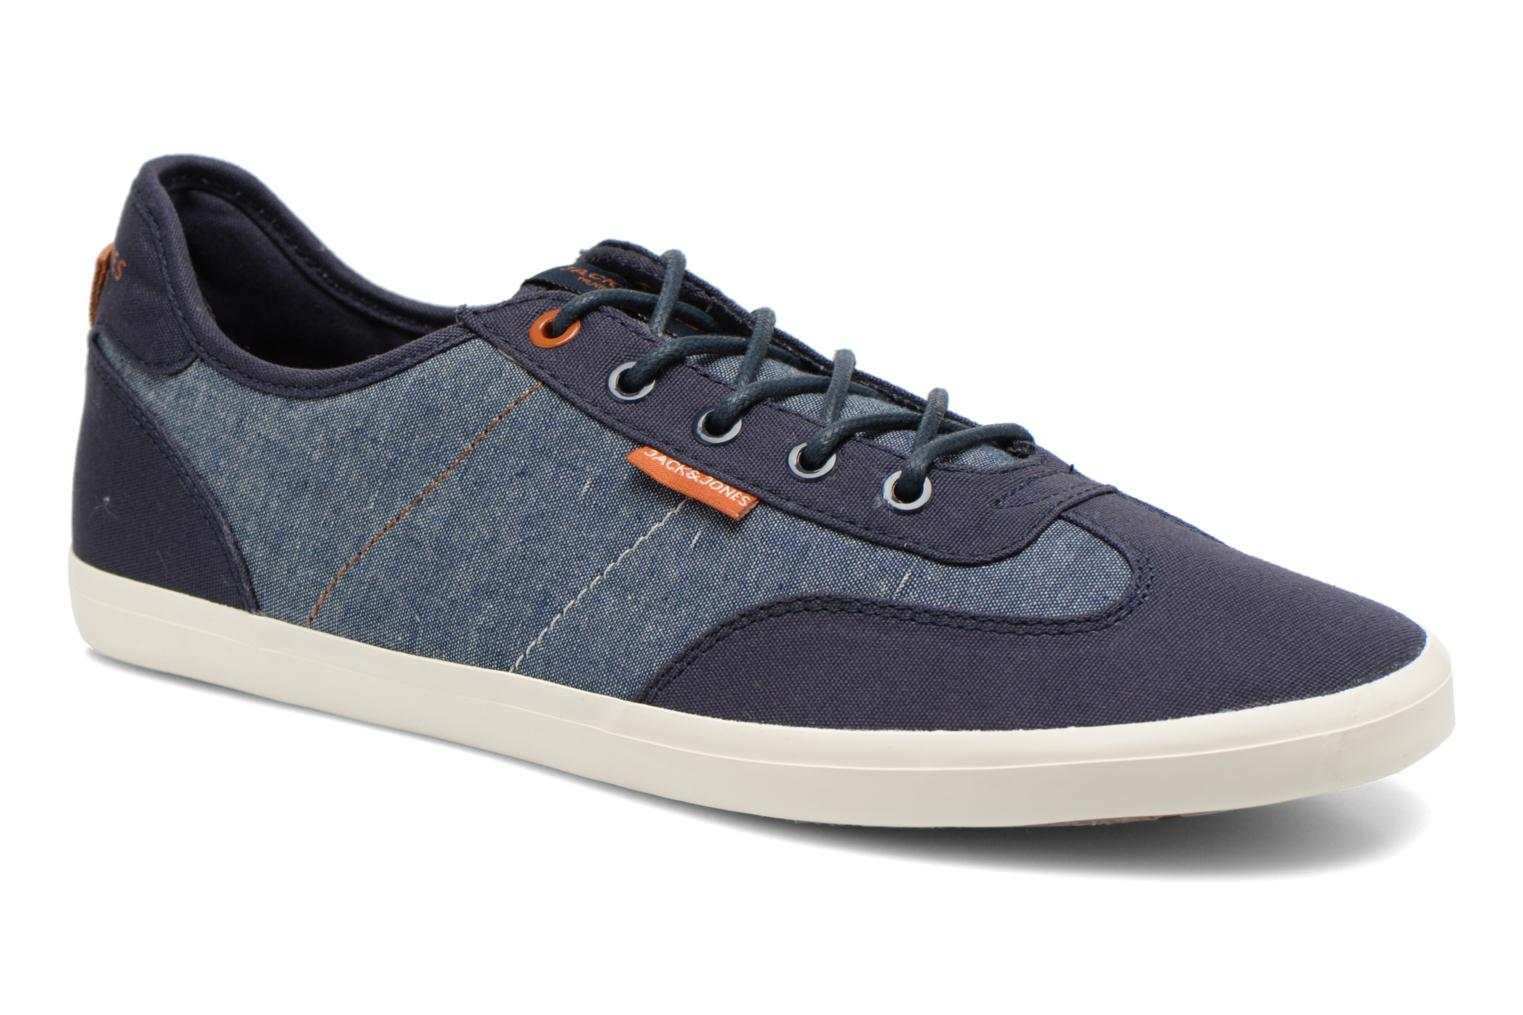 Sneakers JJ Siesta by Jack & Jones